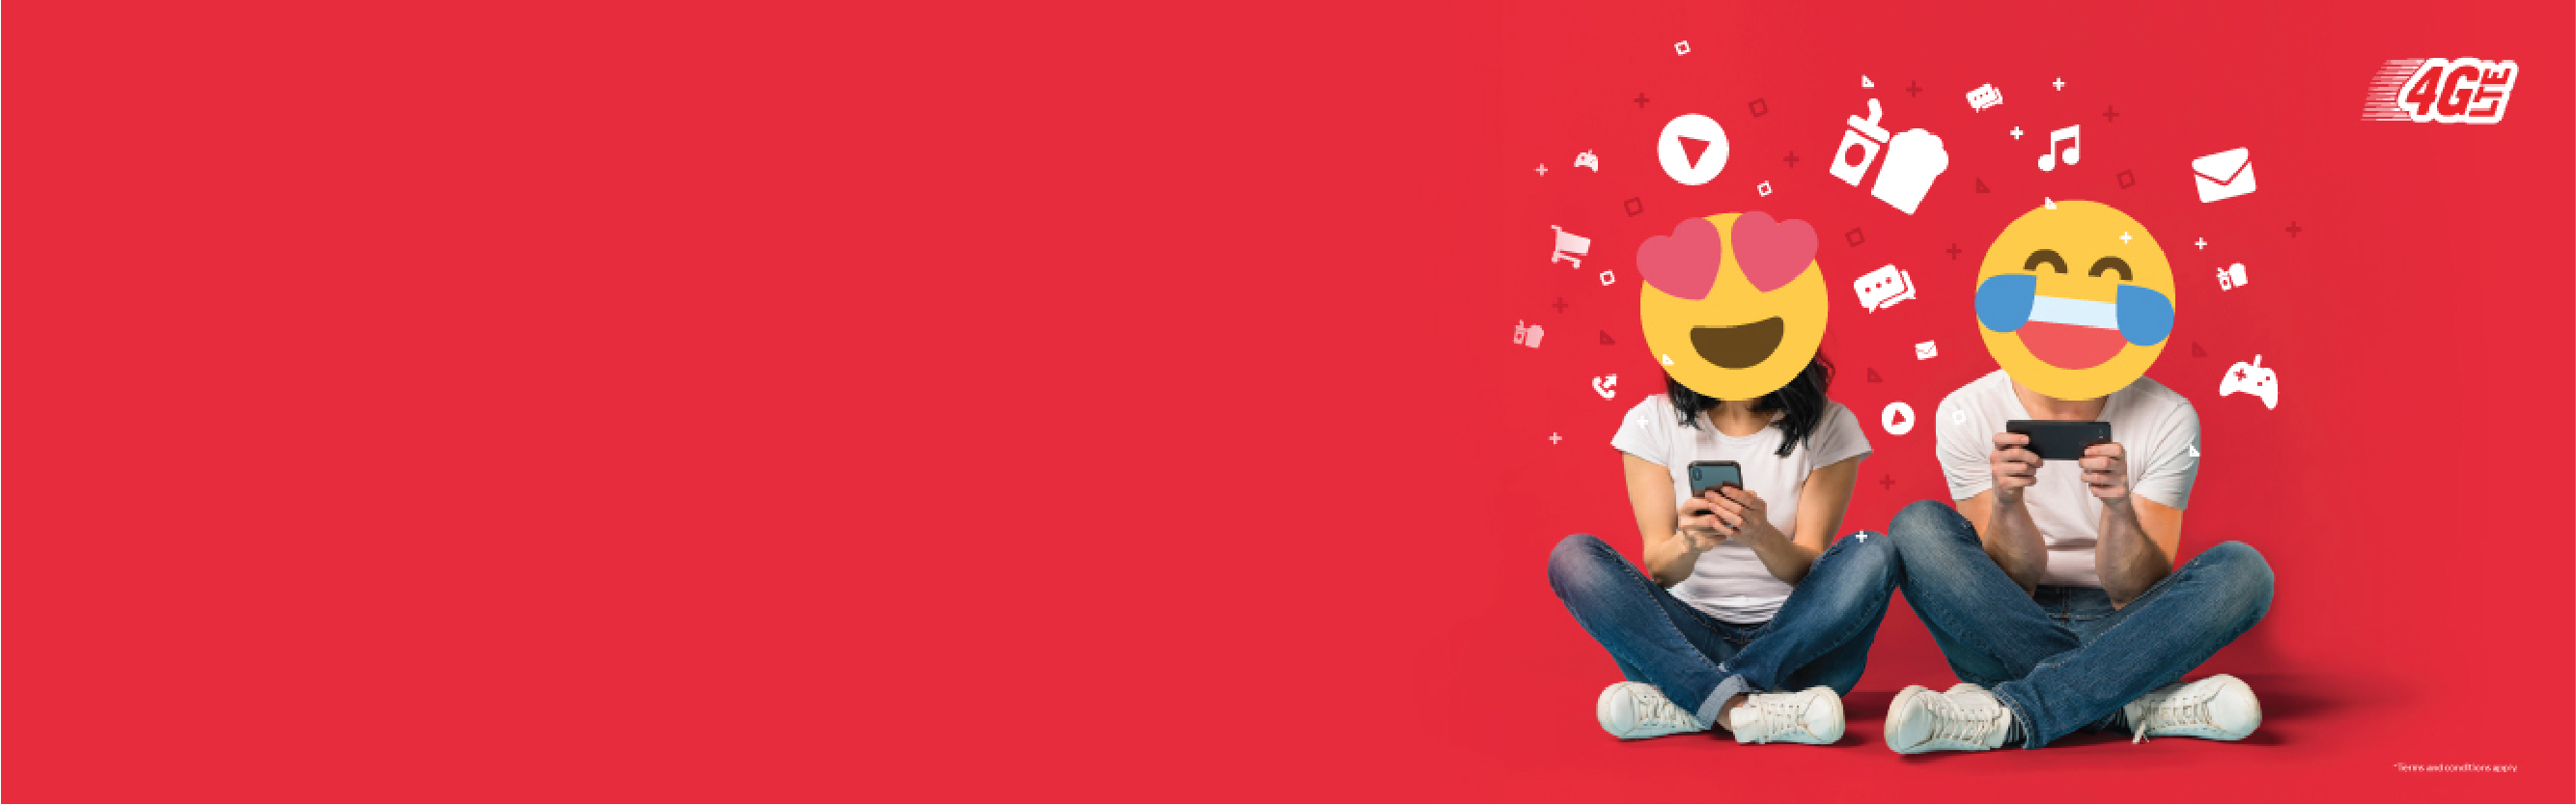 AMAZING68M <br /> MNP Port-In, Switch To Amazing68M & Get 12 Months FREE 10GB 4G LTE Data<br /> To Binge-watch Your Favourite Online Videos